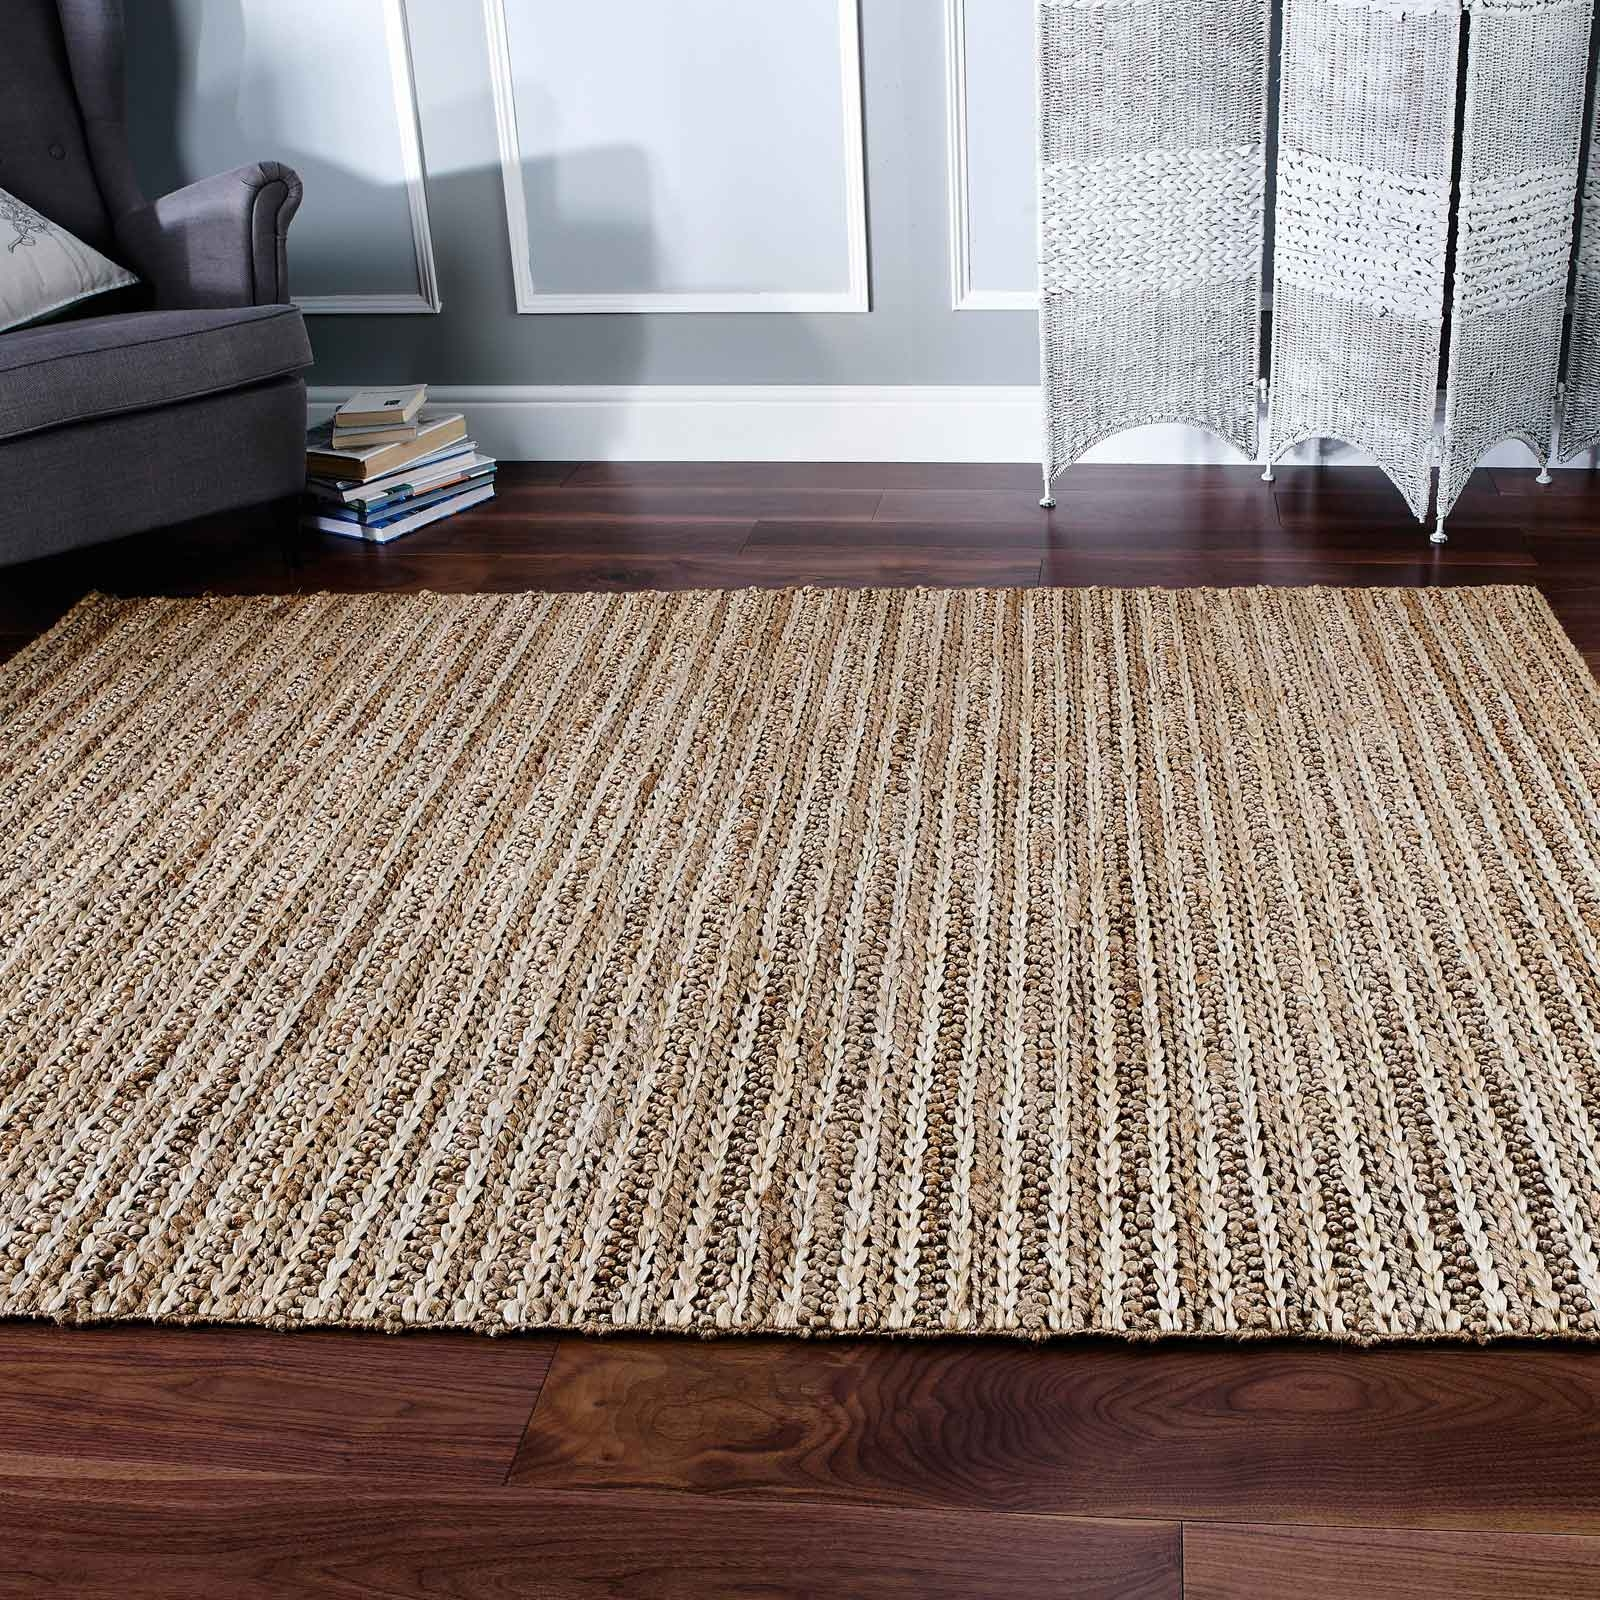 Jute Rug Uk Roselawnlutheran For Large Jute Rugs (Image 10 of 15)